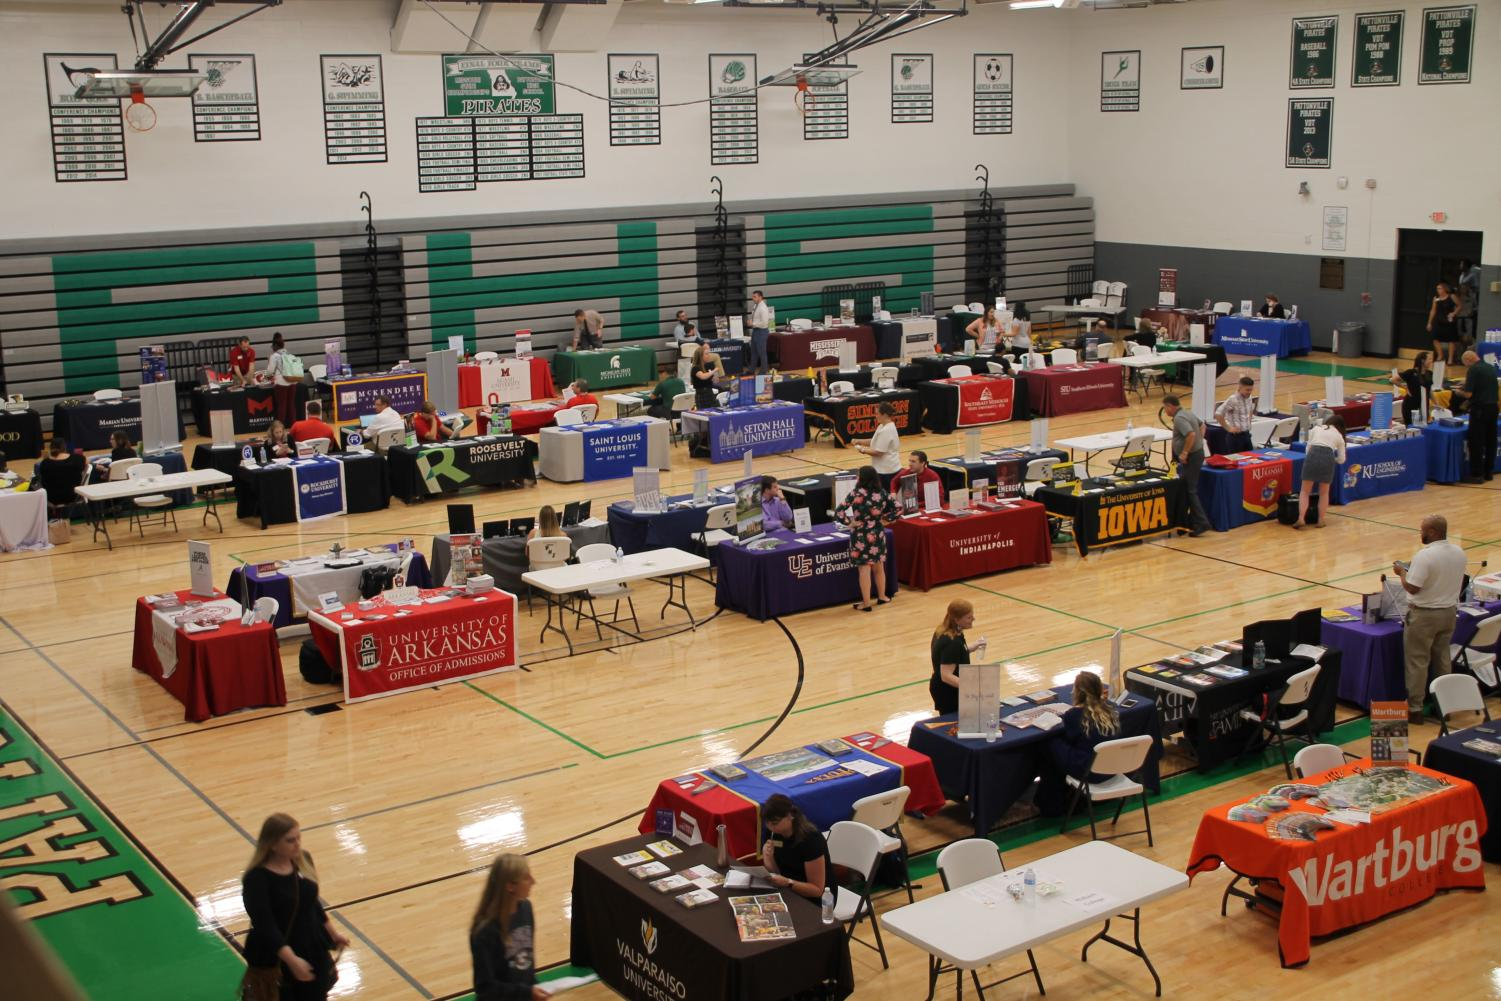 103 colleges and universities assemble for the College Fair on September 17.